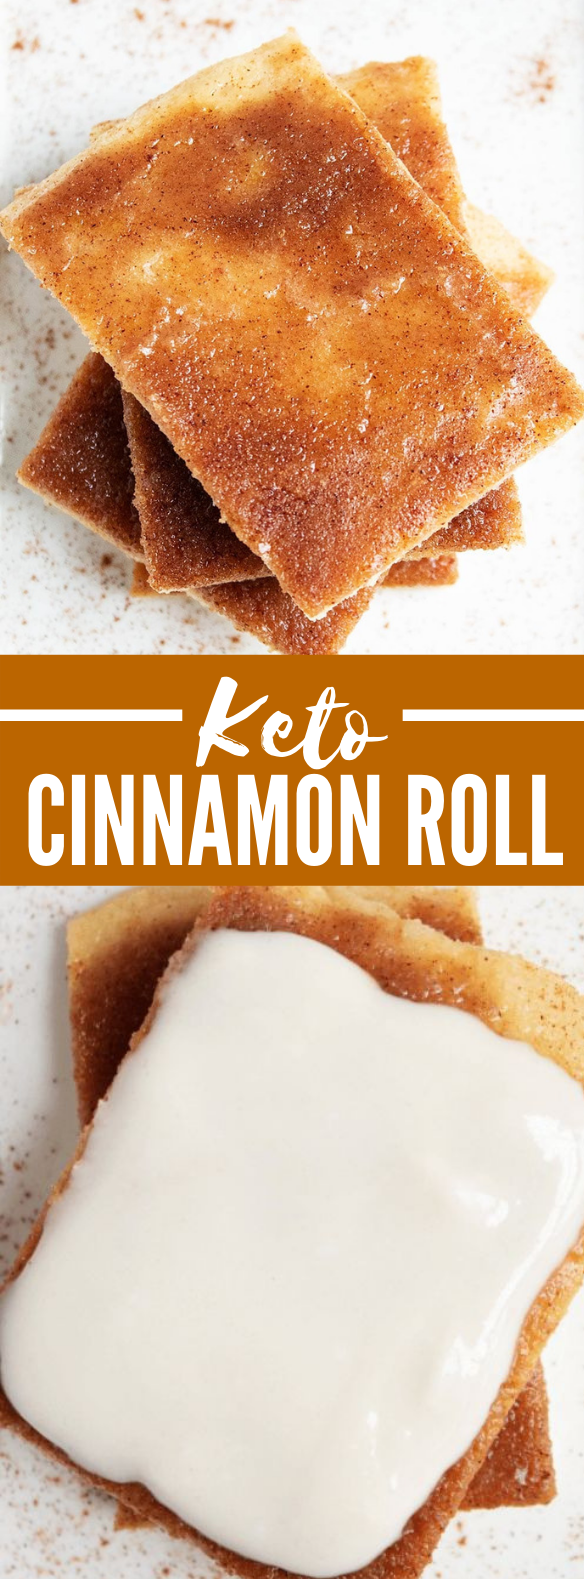 Keto Cinnamon Roll Flatbread {with Easy Icing Recipe} #healthy #ketodiet